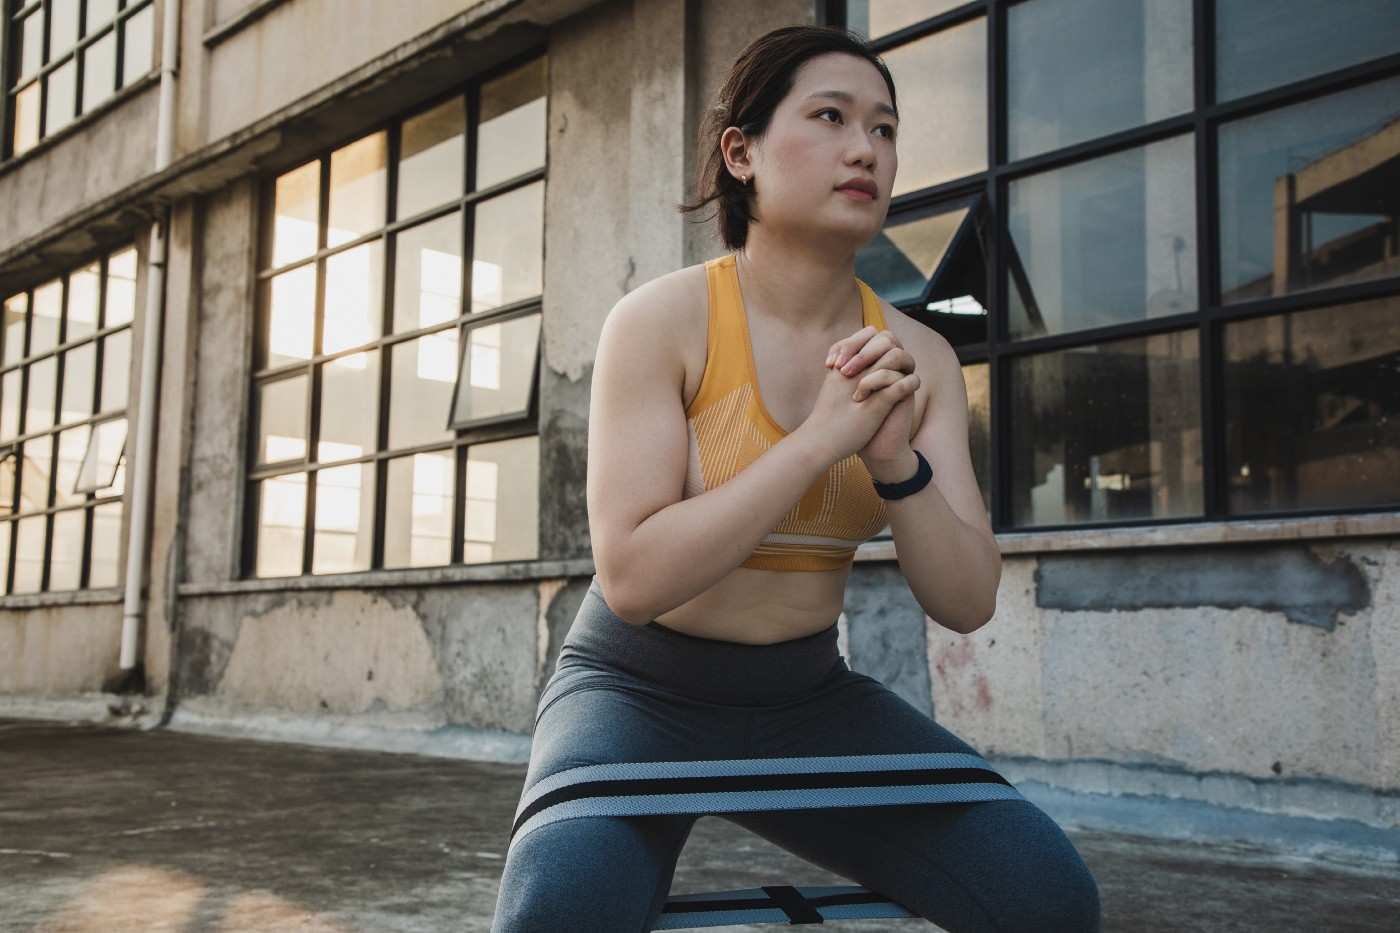 A young, Asian woman performing a squat exercise with a resistance band